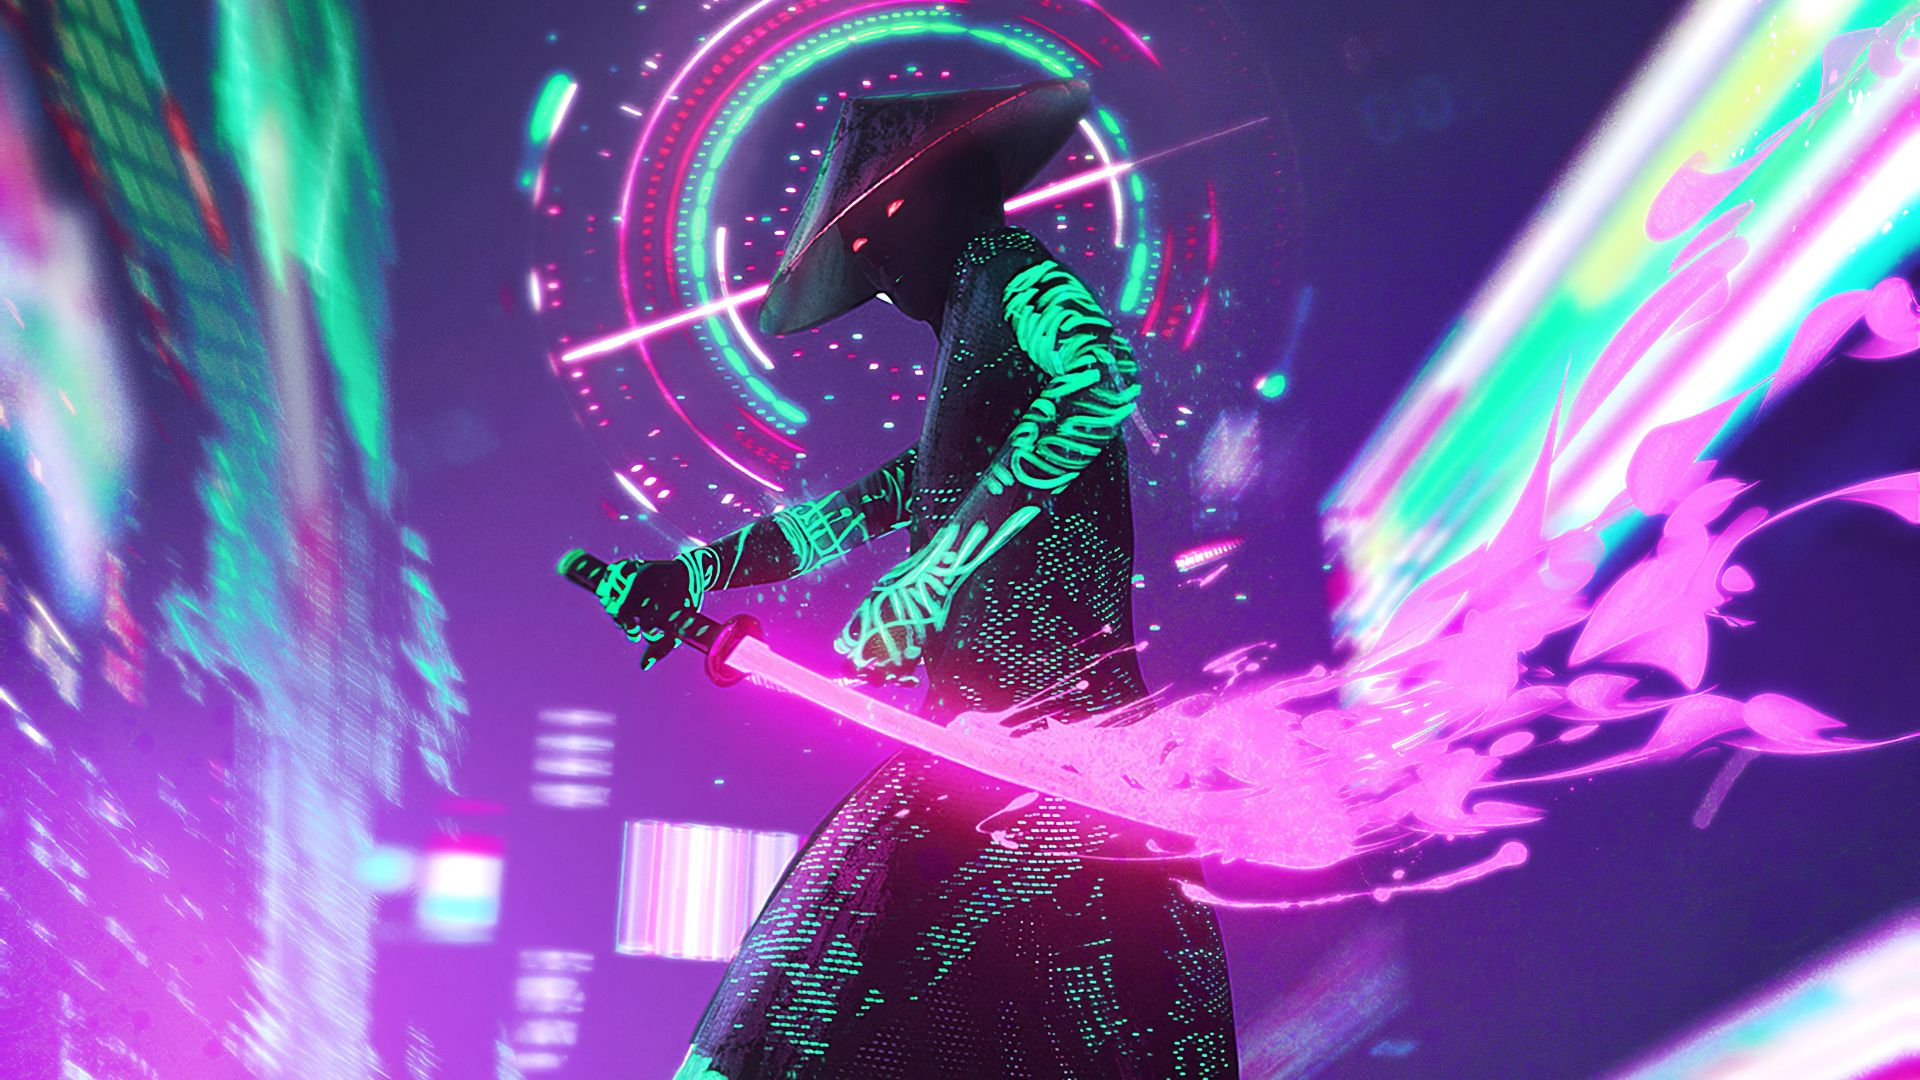 Can Someone Please Make This Wallpaper Higher Resolution Or Maybe Find The Original Gaming Wallpapers Samurai Wallpaper Neon